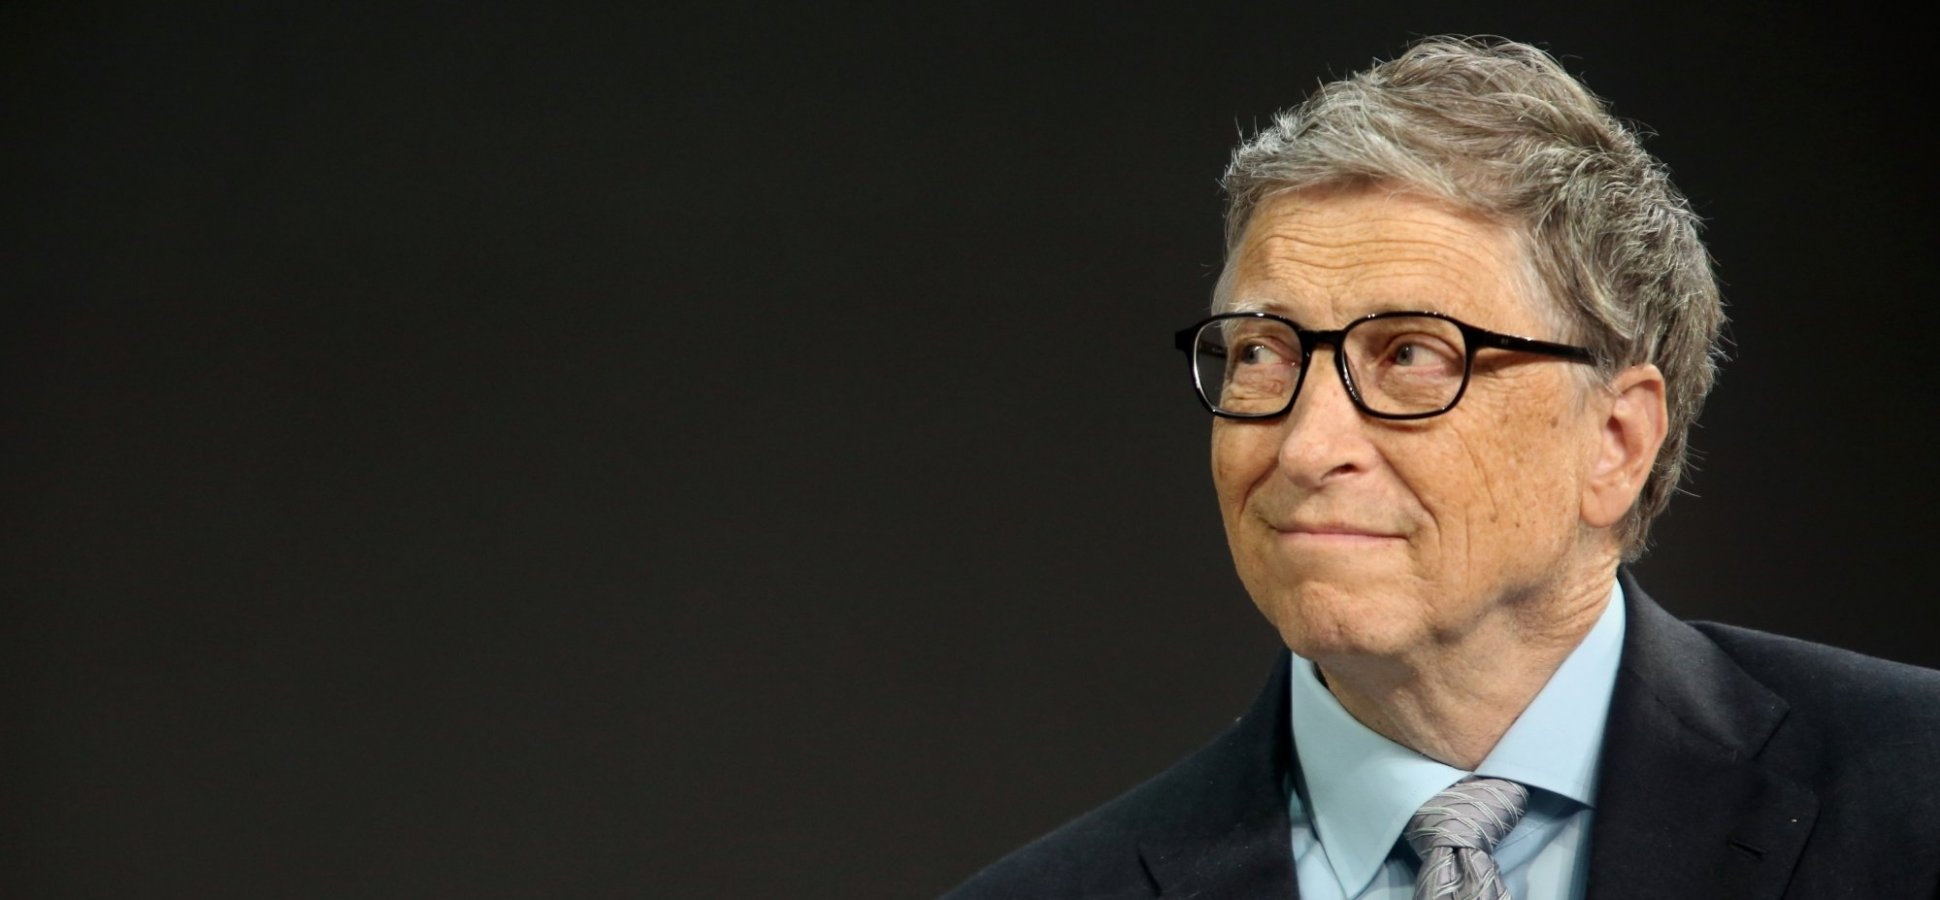 Bill Gates: Hiring, management is my biggest source of work anxiety recommendations